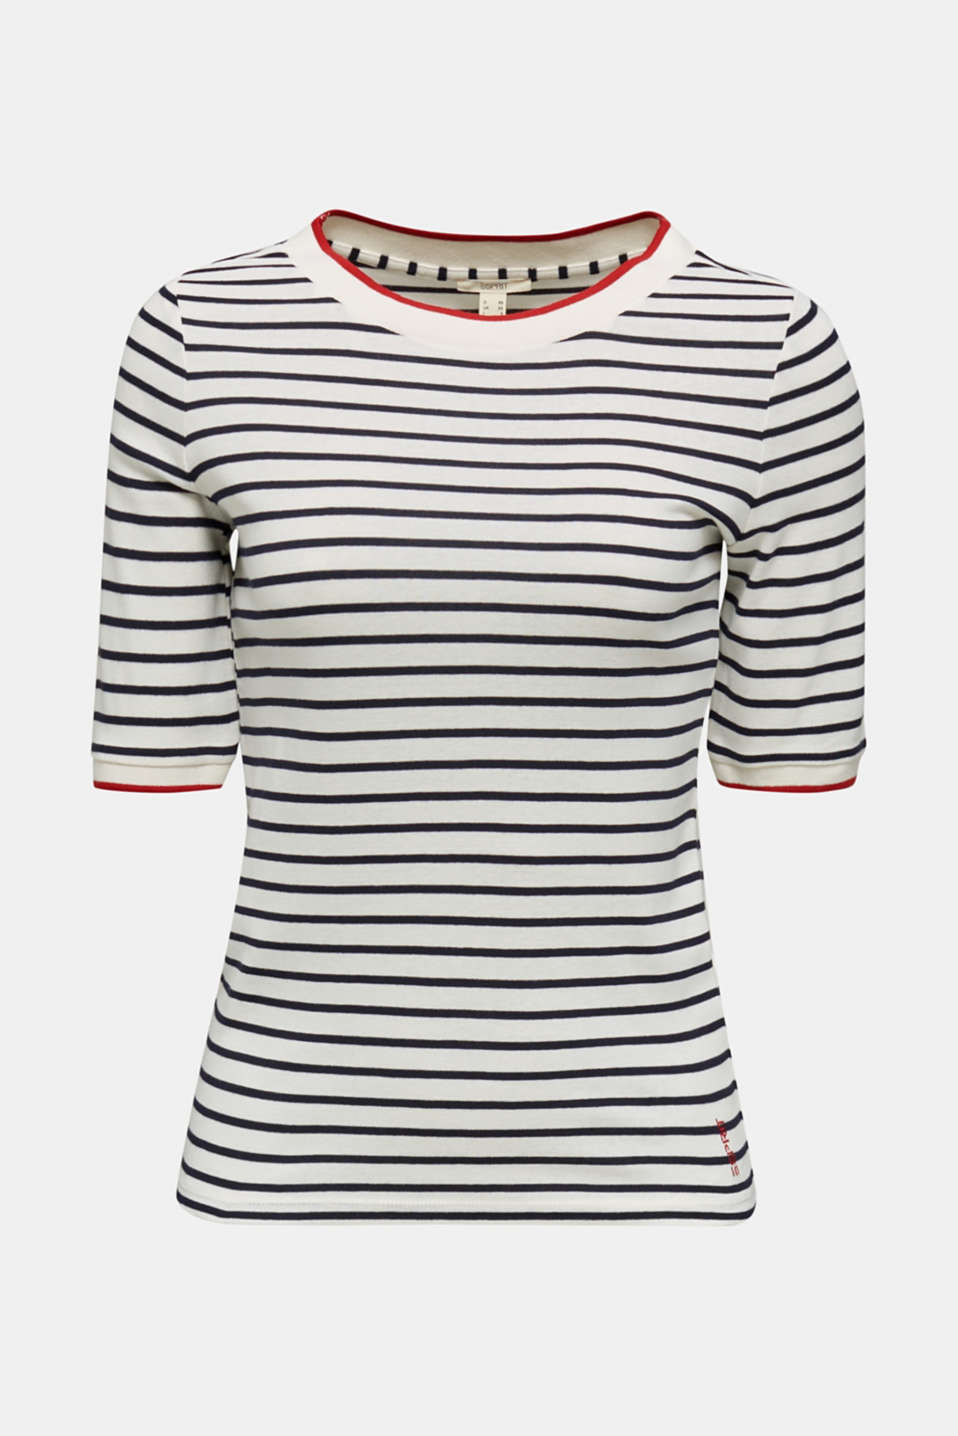 Striped top with ribbed borders, 100% cotton, NAVY, detail image number 5